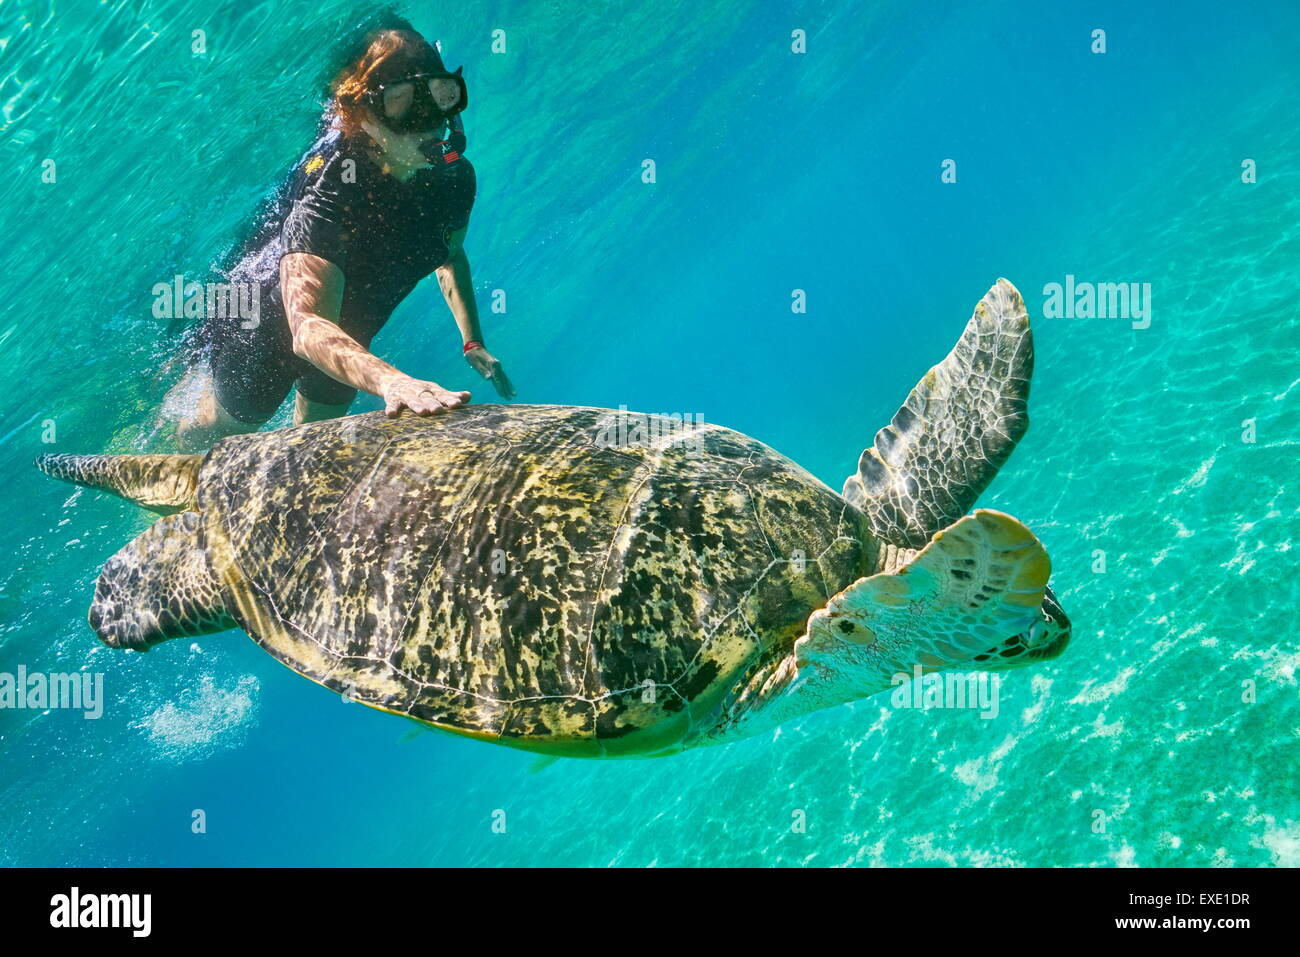 Underwater view at Green Sea Turtle and a young woman, Marsa Alam, Abu Dabbab Bay, Red Sea, Egypt - Stock Image